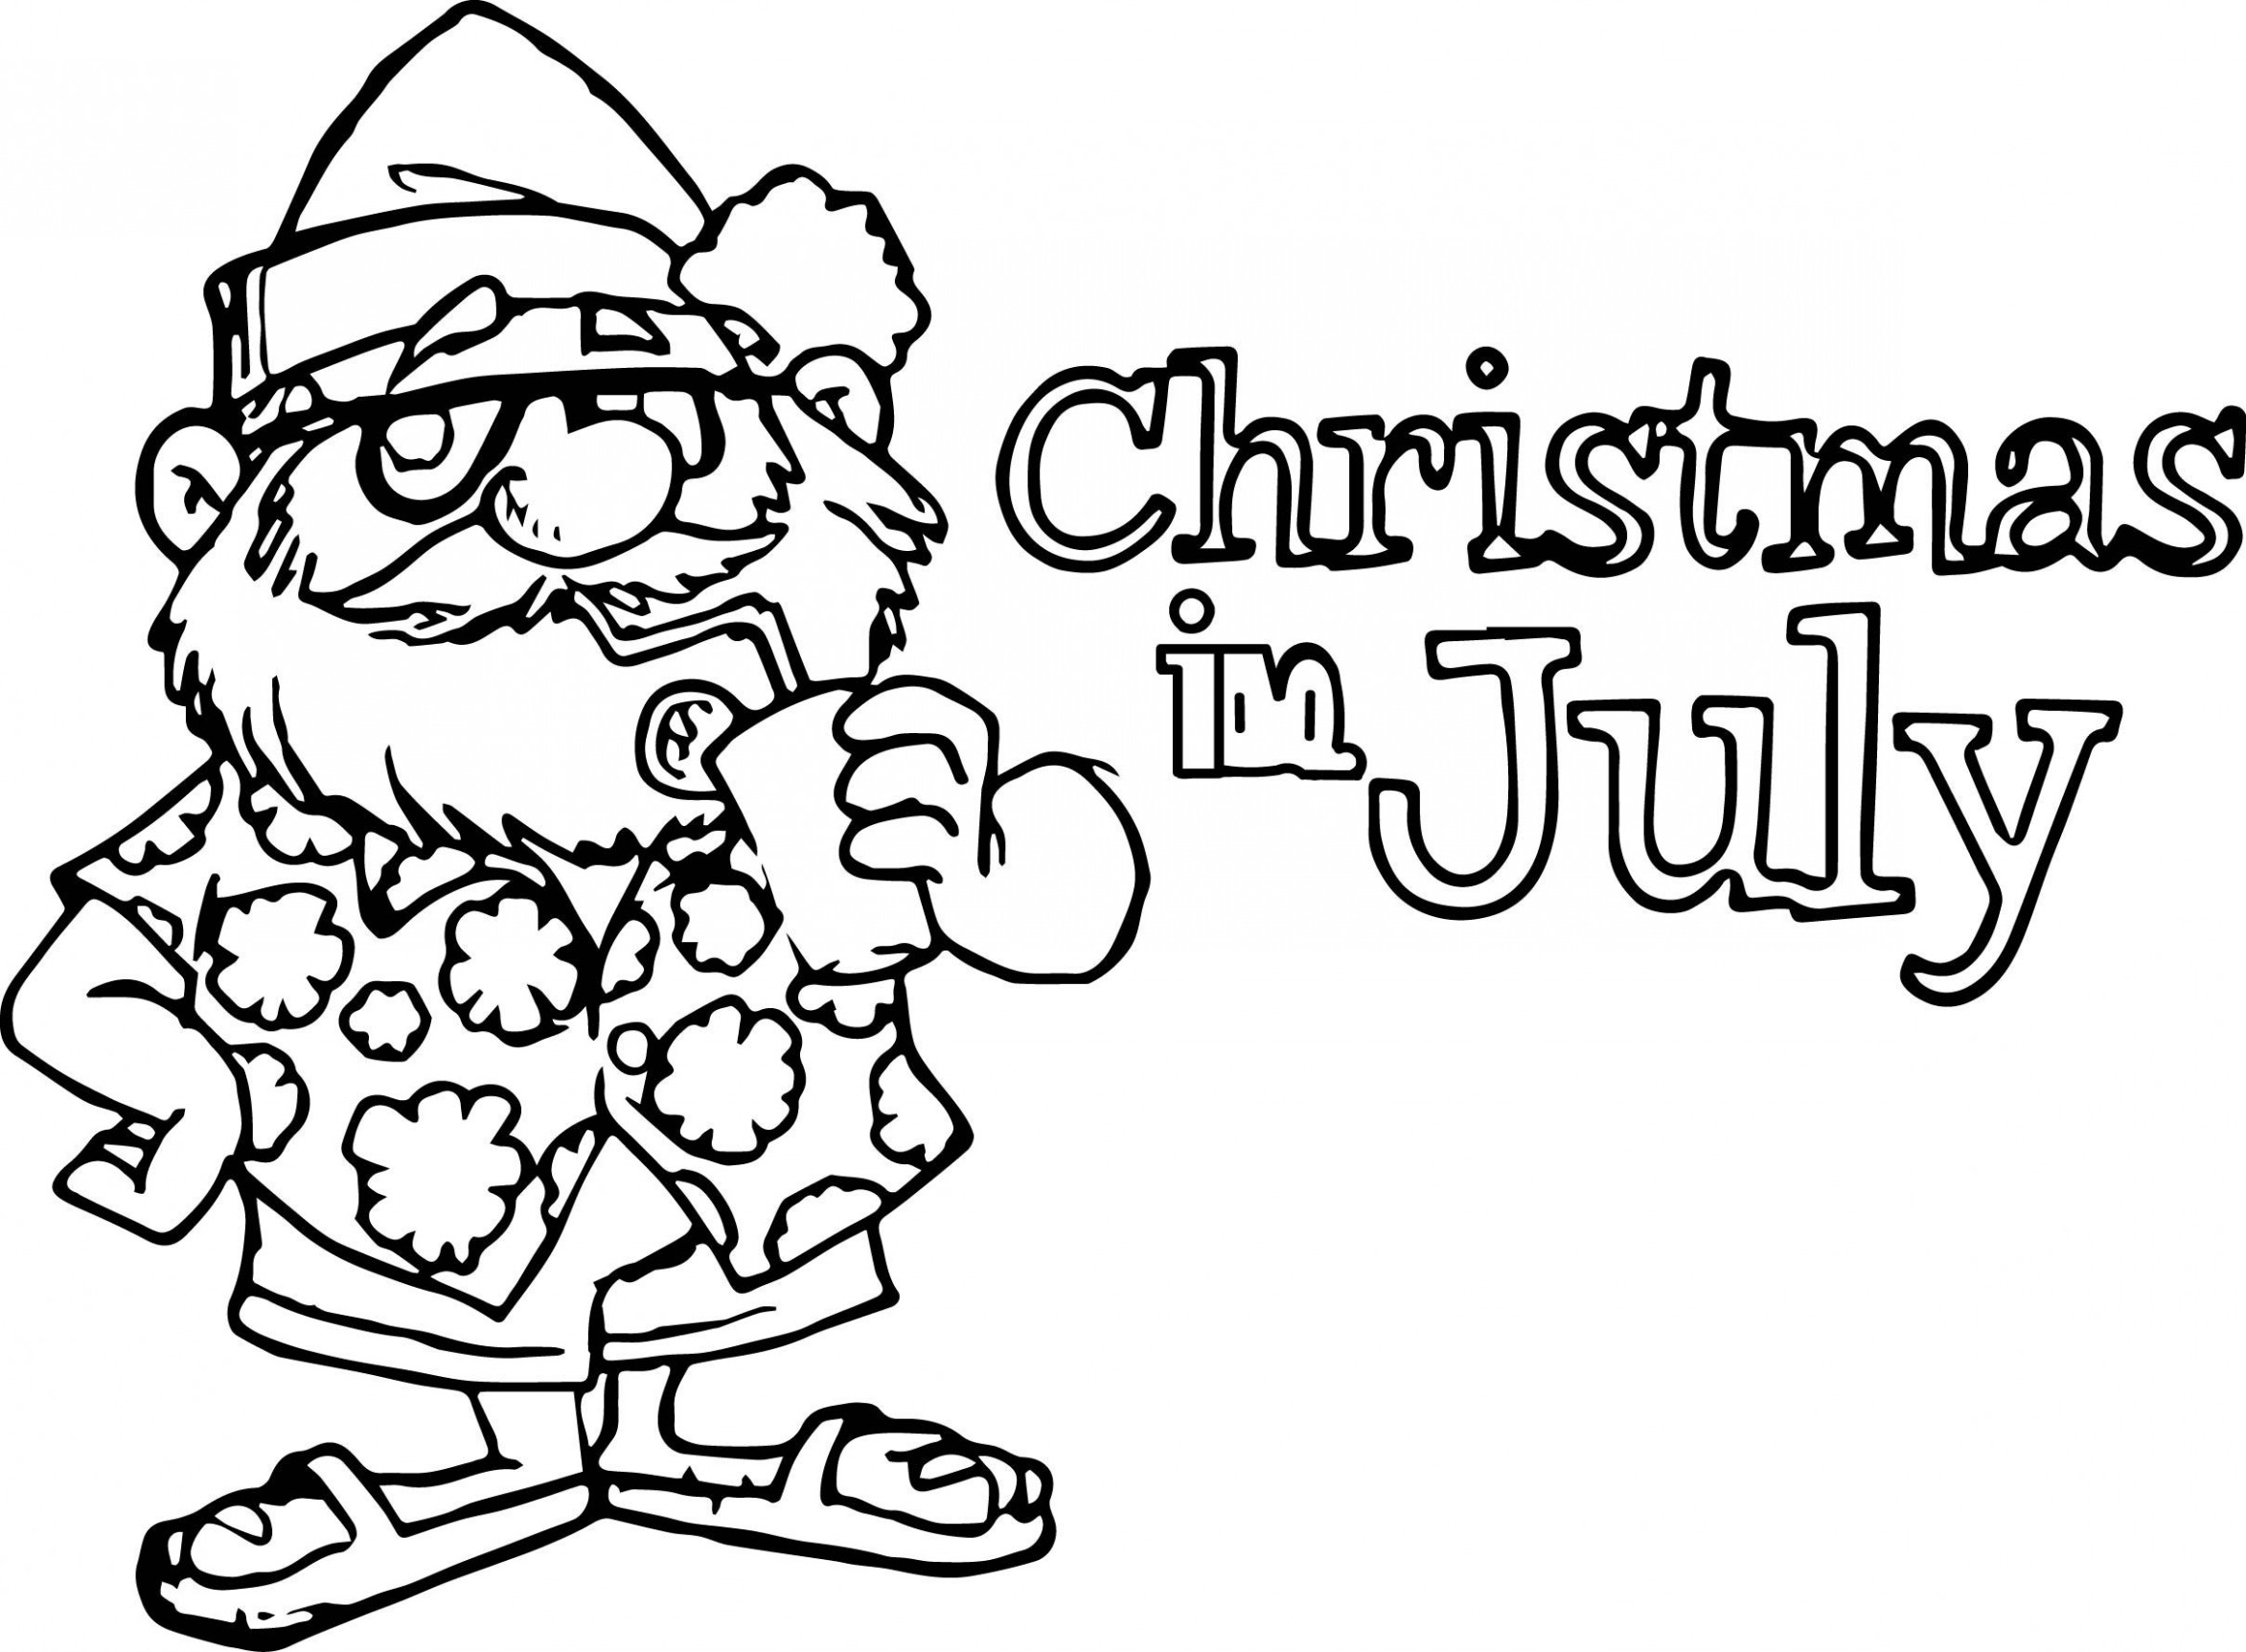 17th Of July Christmas In July Coloring Page   Wecoloringpage ..